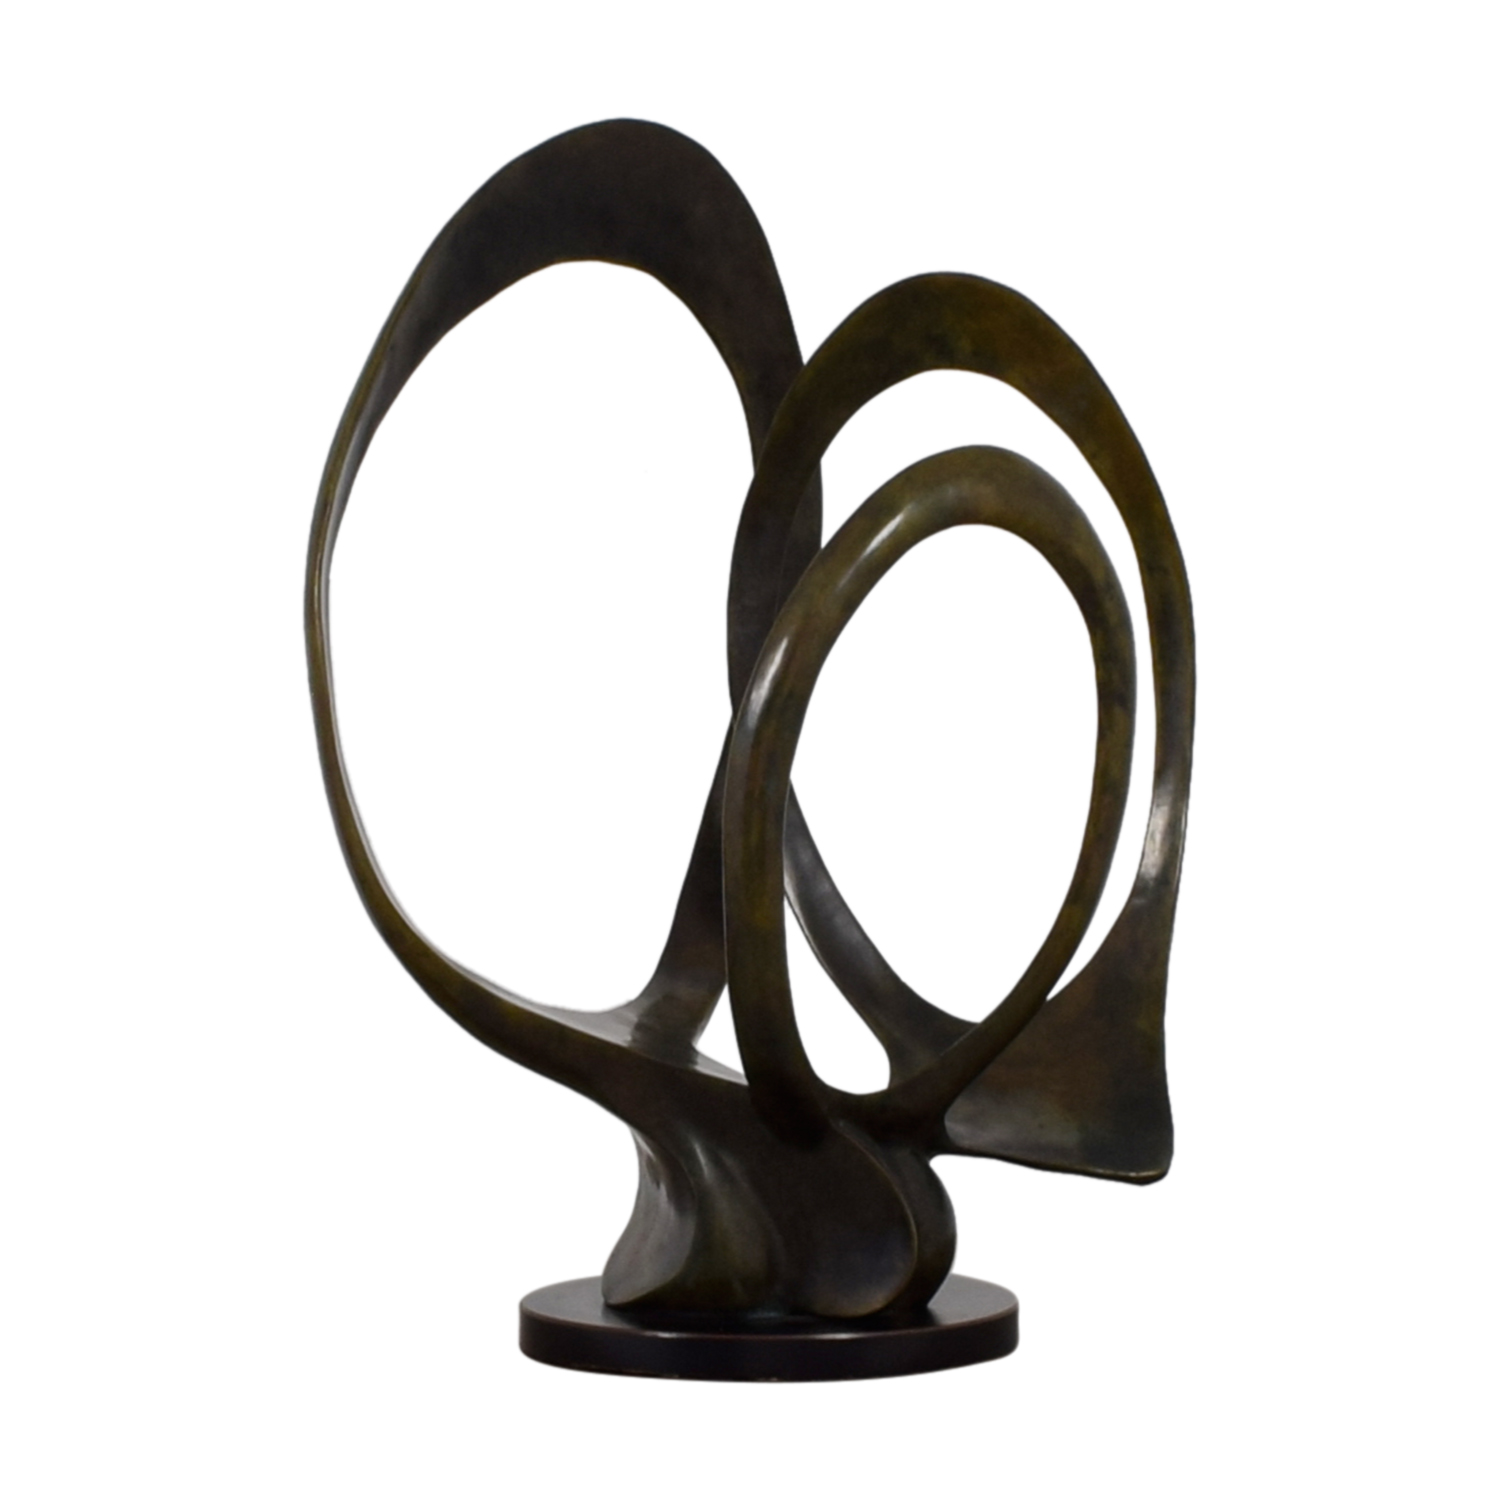 buy  Decorative Metal Sculpture online